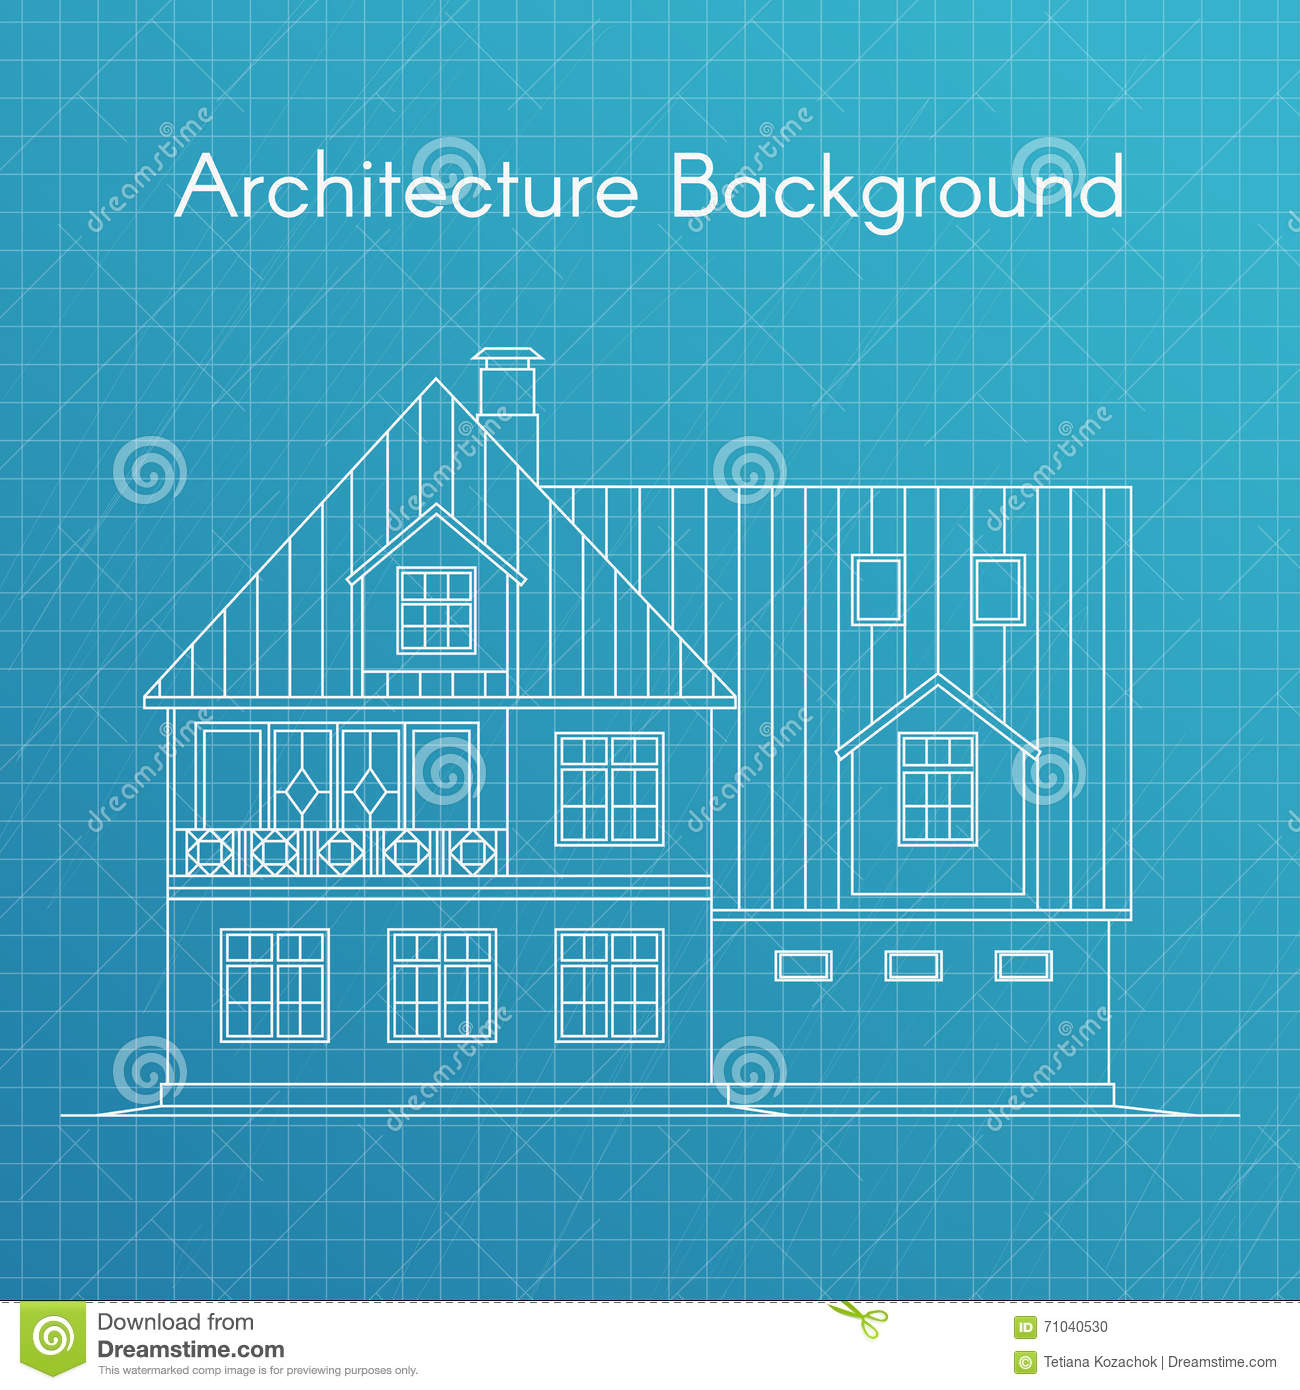 Vector illustration of family house or cottage architecture vector illustration of family house or cottage architecture blueprint background large private cottage for real estate brochures or web icon malvernweather Images